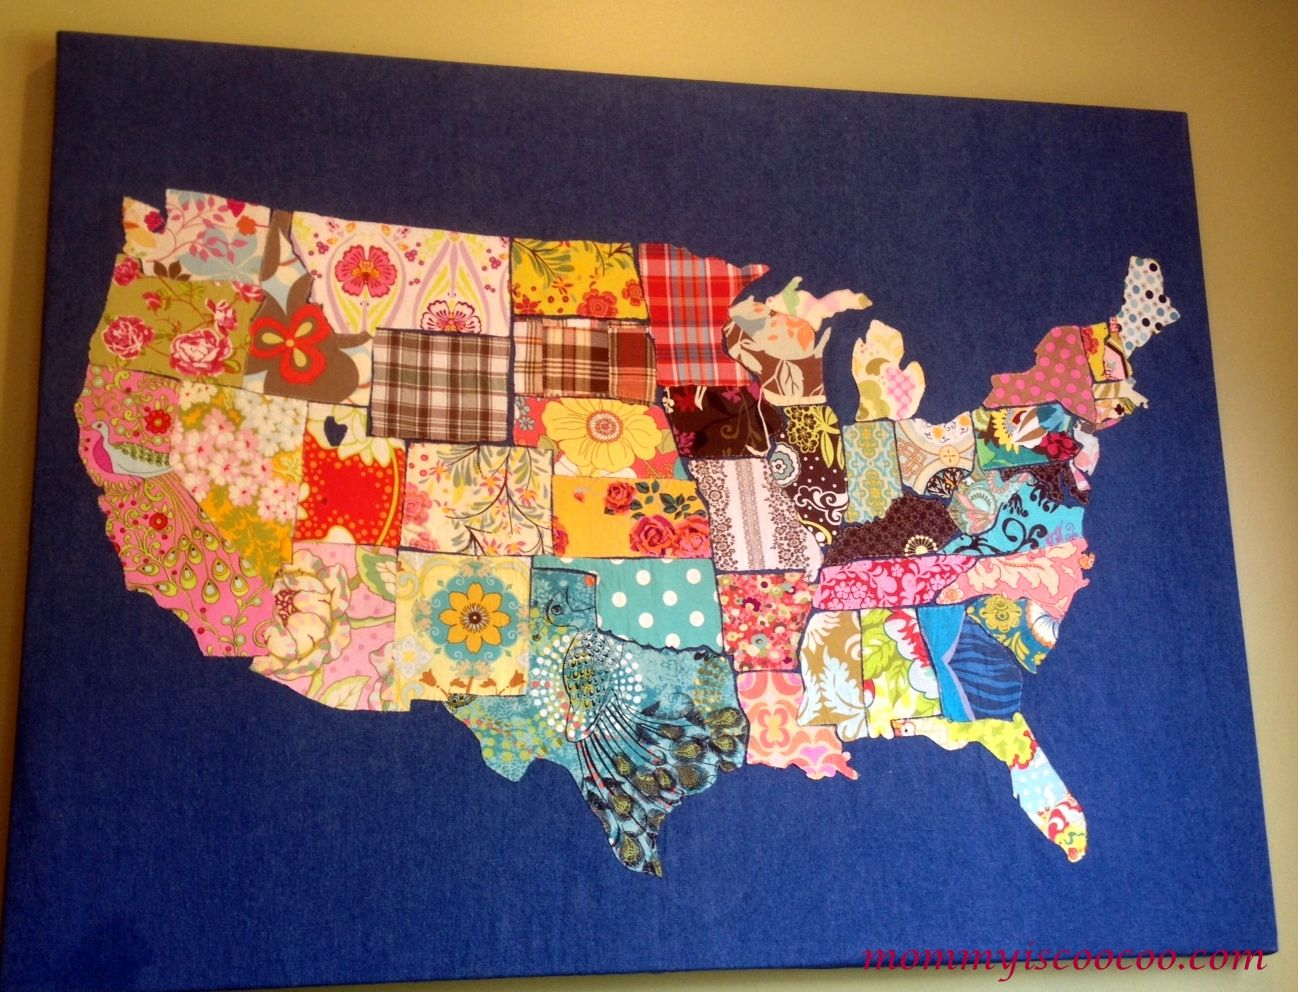 How To Make A Fabric USA Map Fabrics Fabric Remnants And Craft - Make a us map